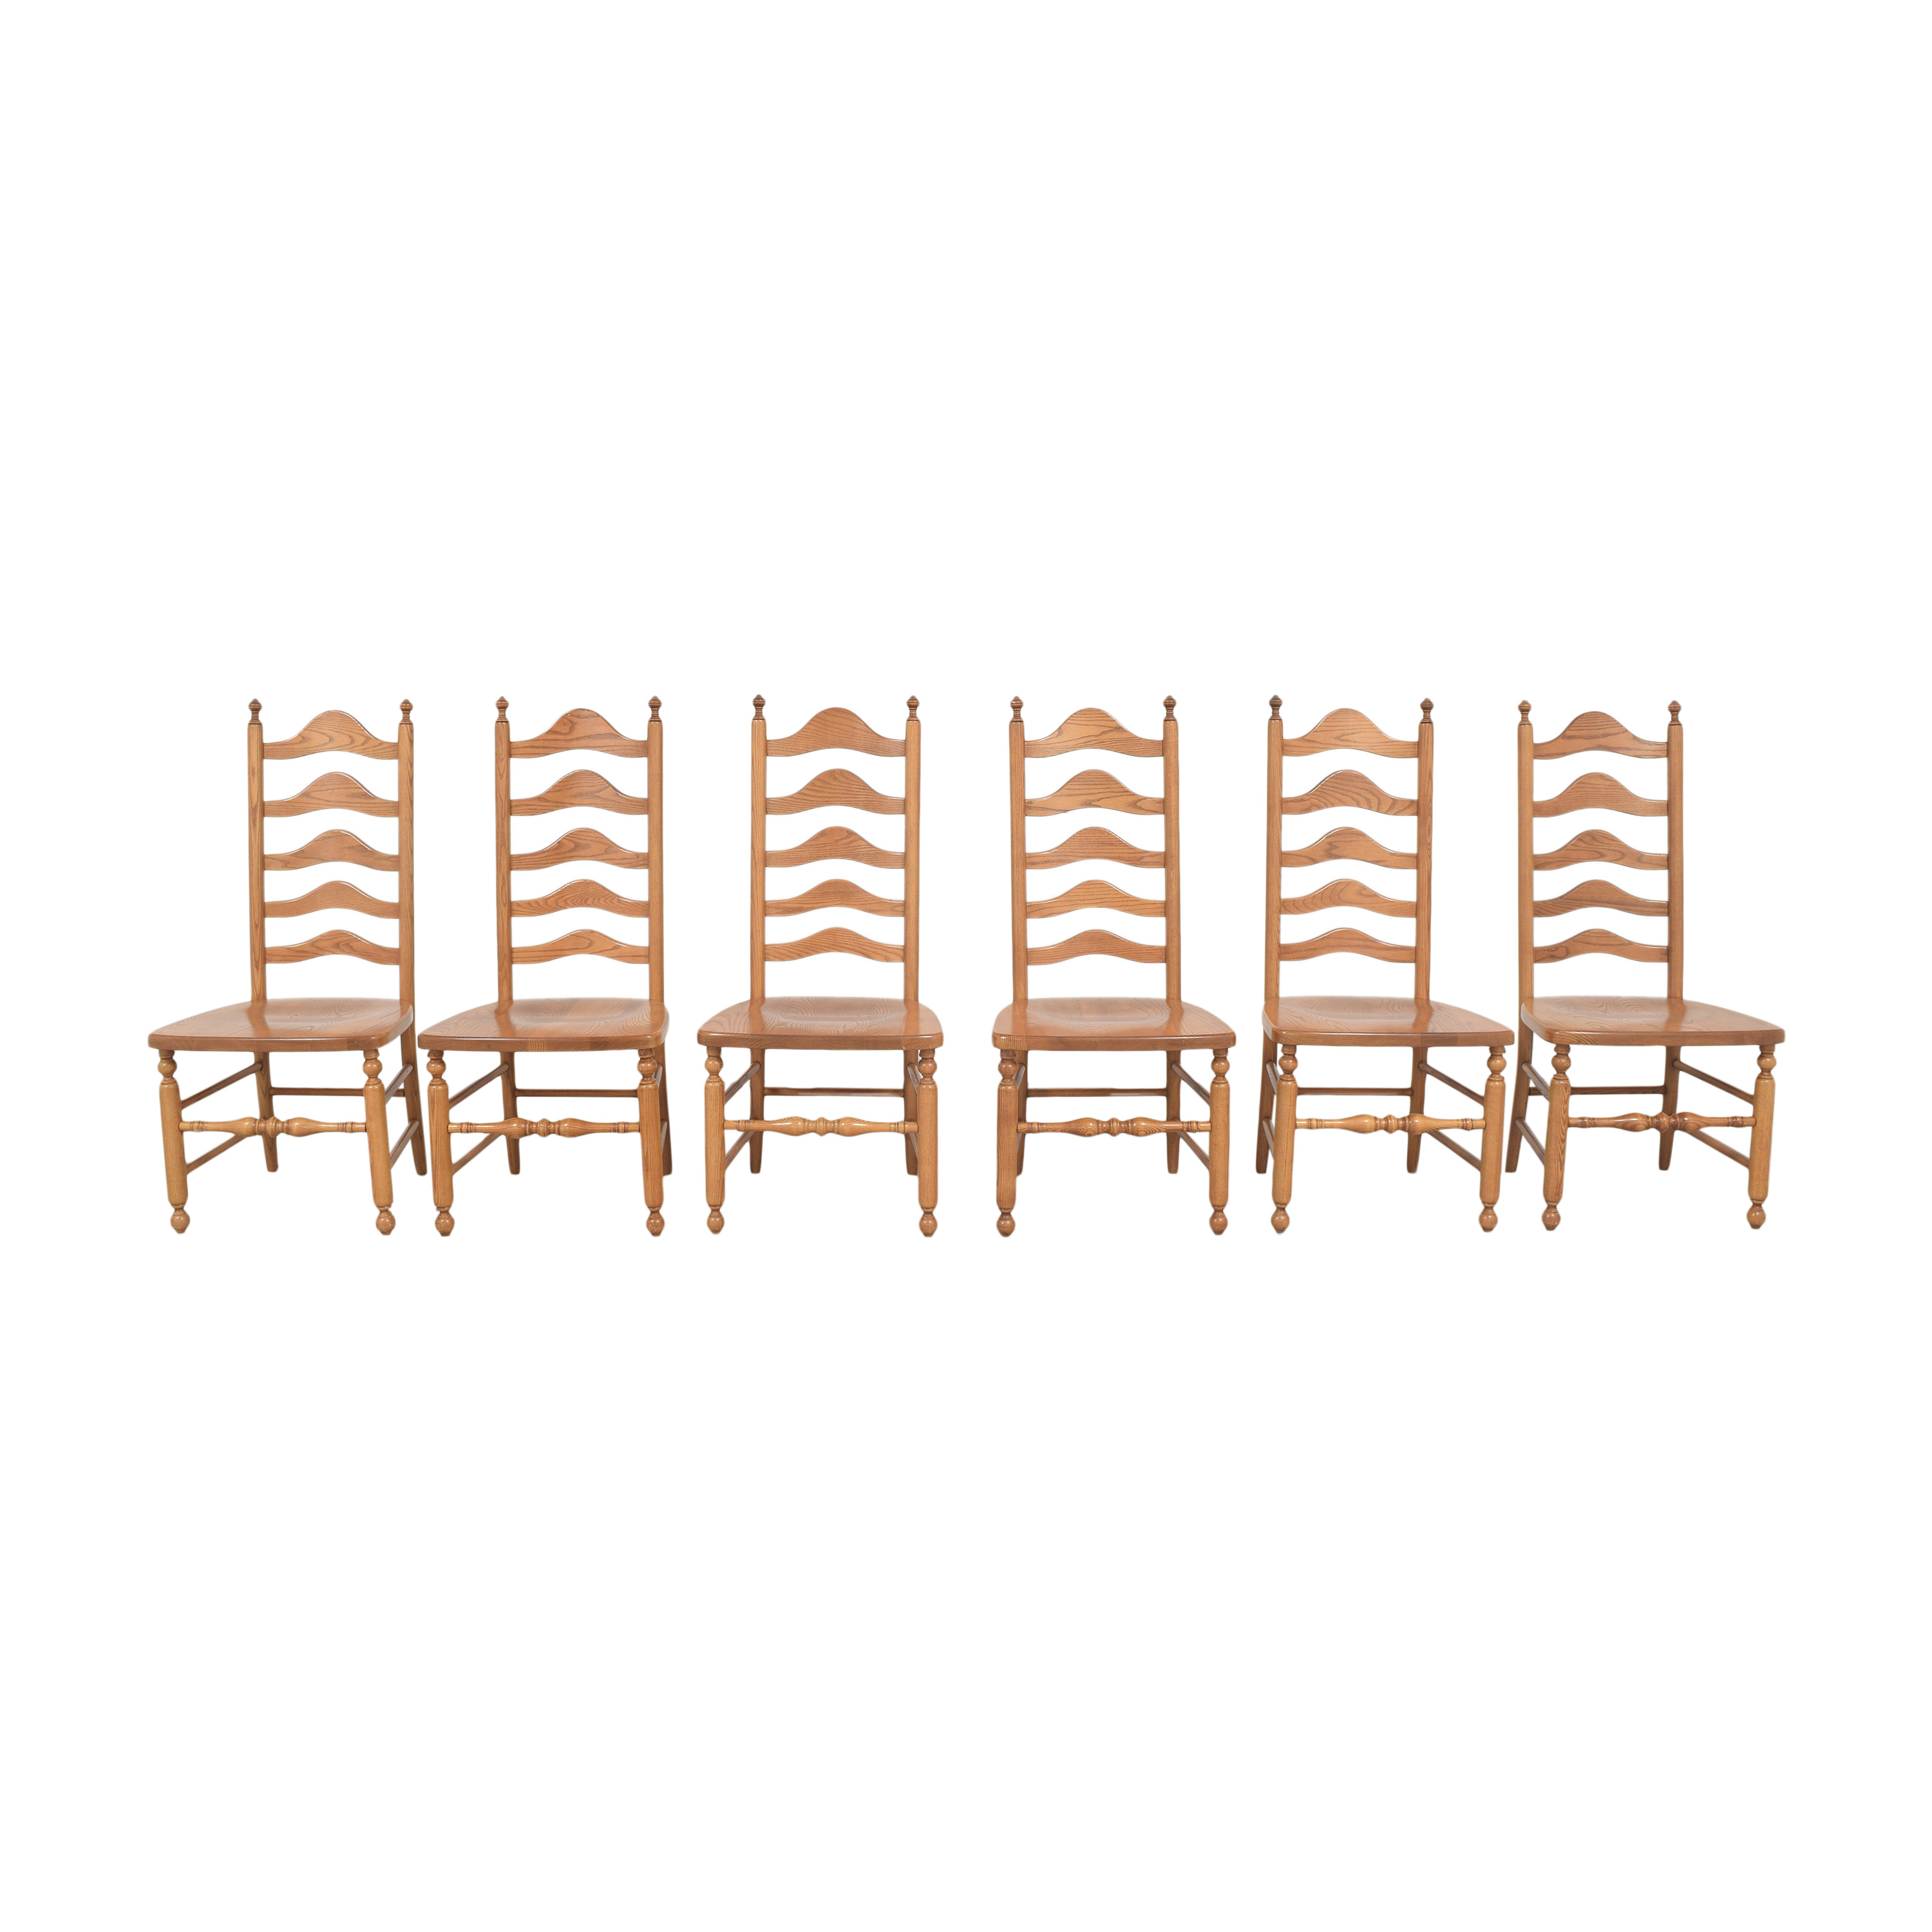 buy S. Bent & Bros Ladderback Dining Chairs S. Bent & Bros Dining Chairs